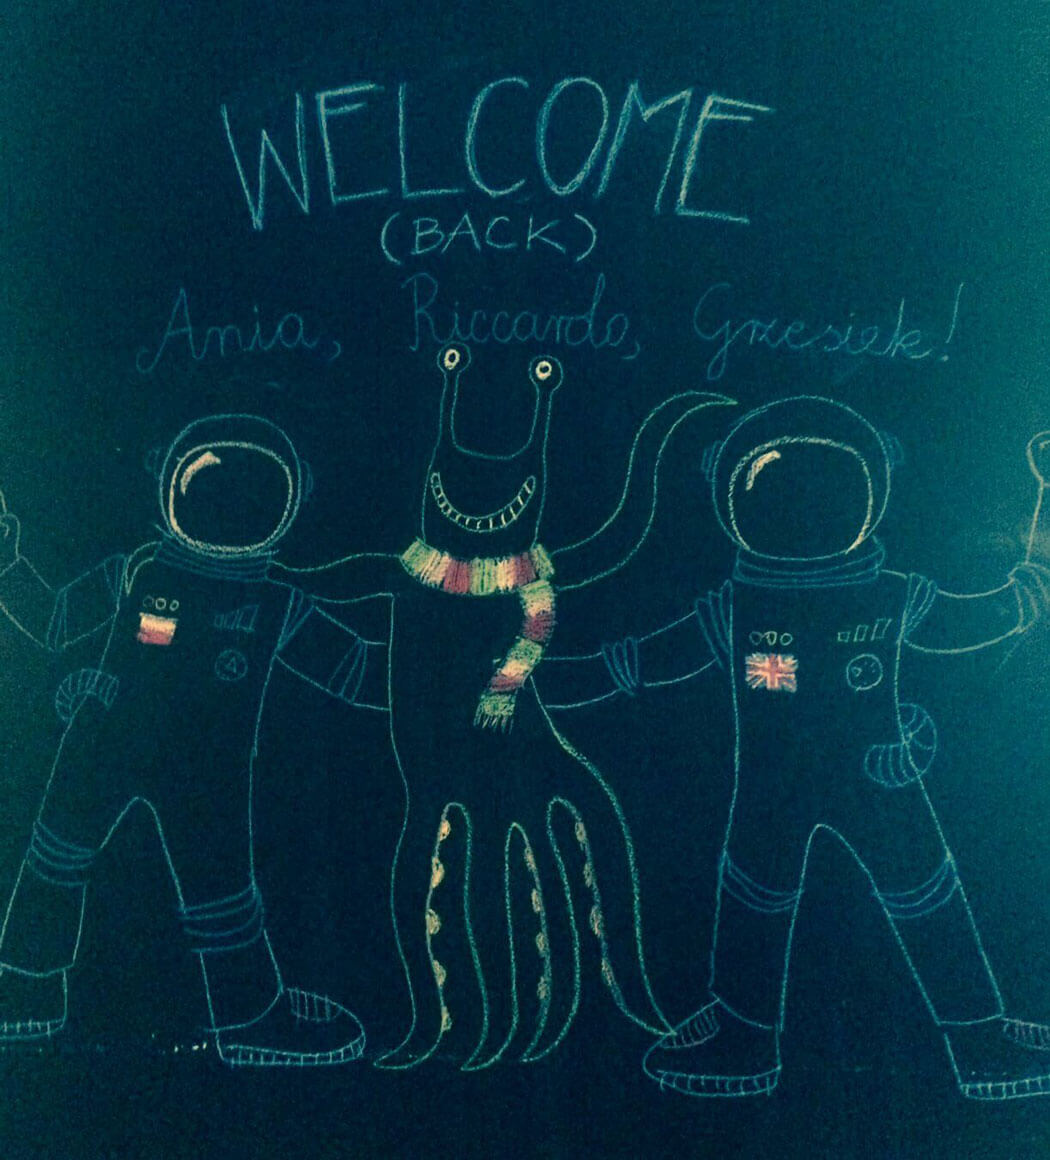 'Welcome back' drawing on a blackboard